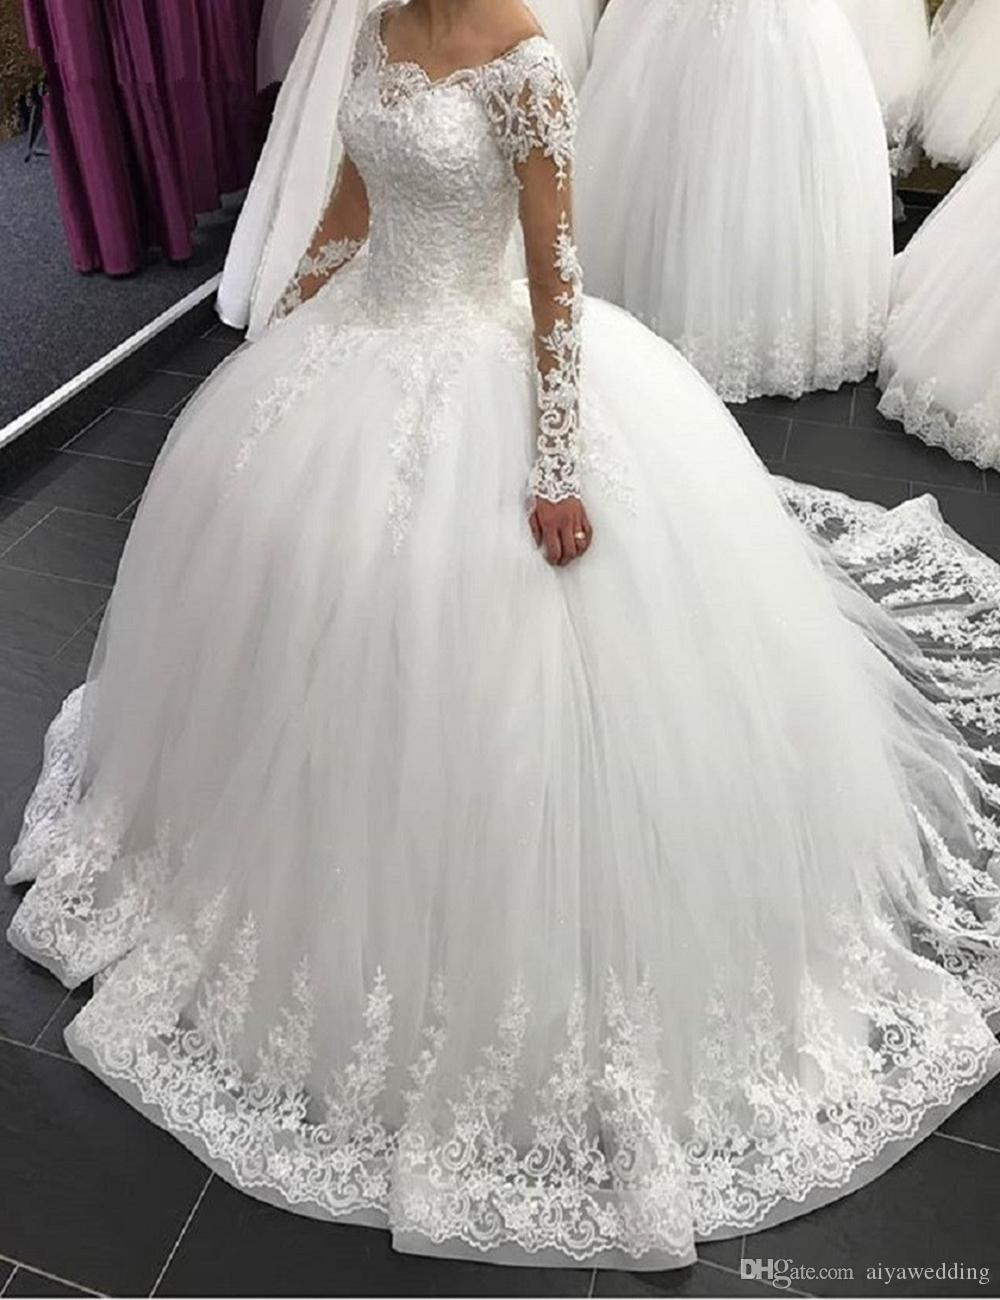 2020 Elegant Long Sleeve Wedding Dresses Lace Ball Gown Tulle